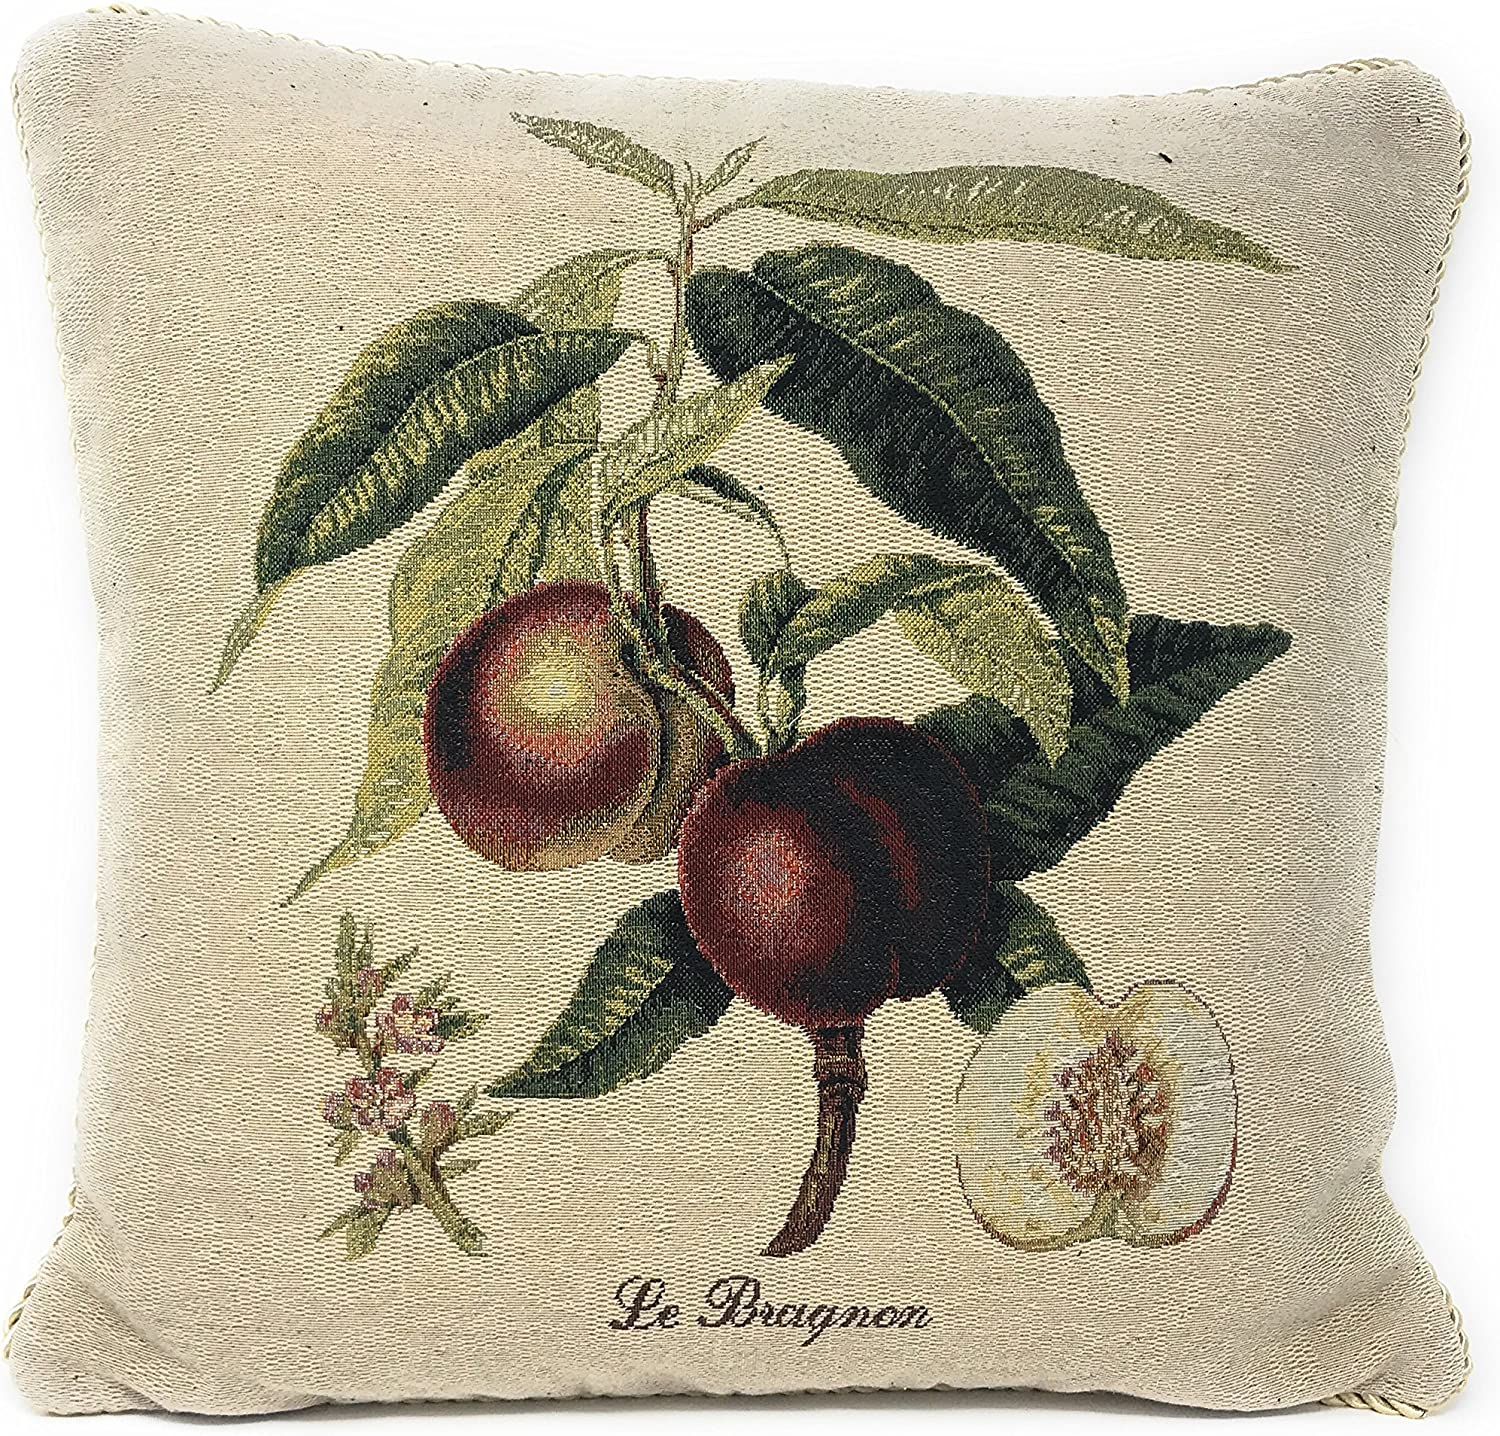 DaDa Houston Mall Bedding Throw Pillow Cover Elegant Decorative Luxury - Acce New Free Shipping